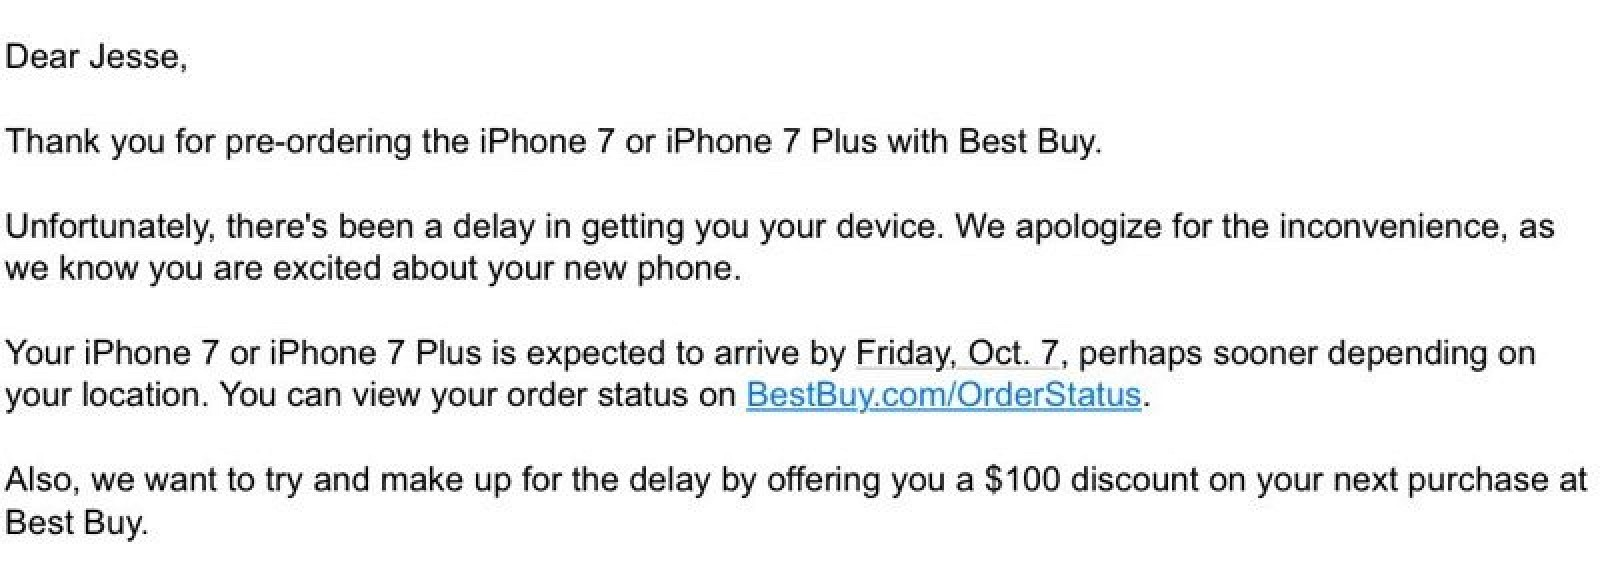 best buy delays some iphone 7 plus orders offers 100 promo code as compensation mac rumors. Black Bedroom Furniture Sets. Home Design Ideas